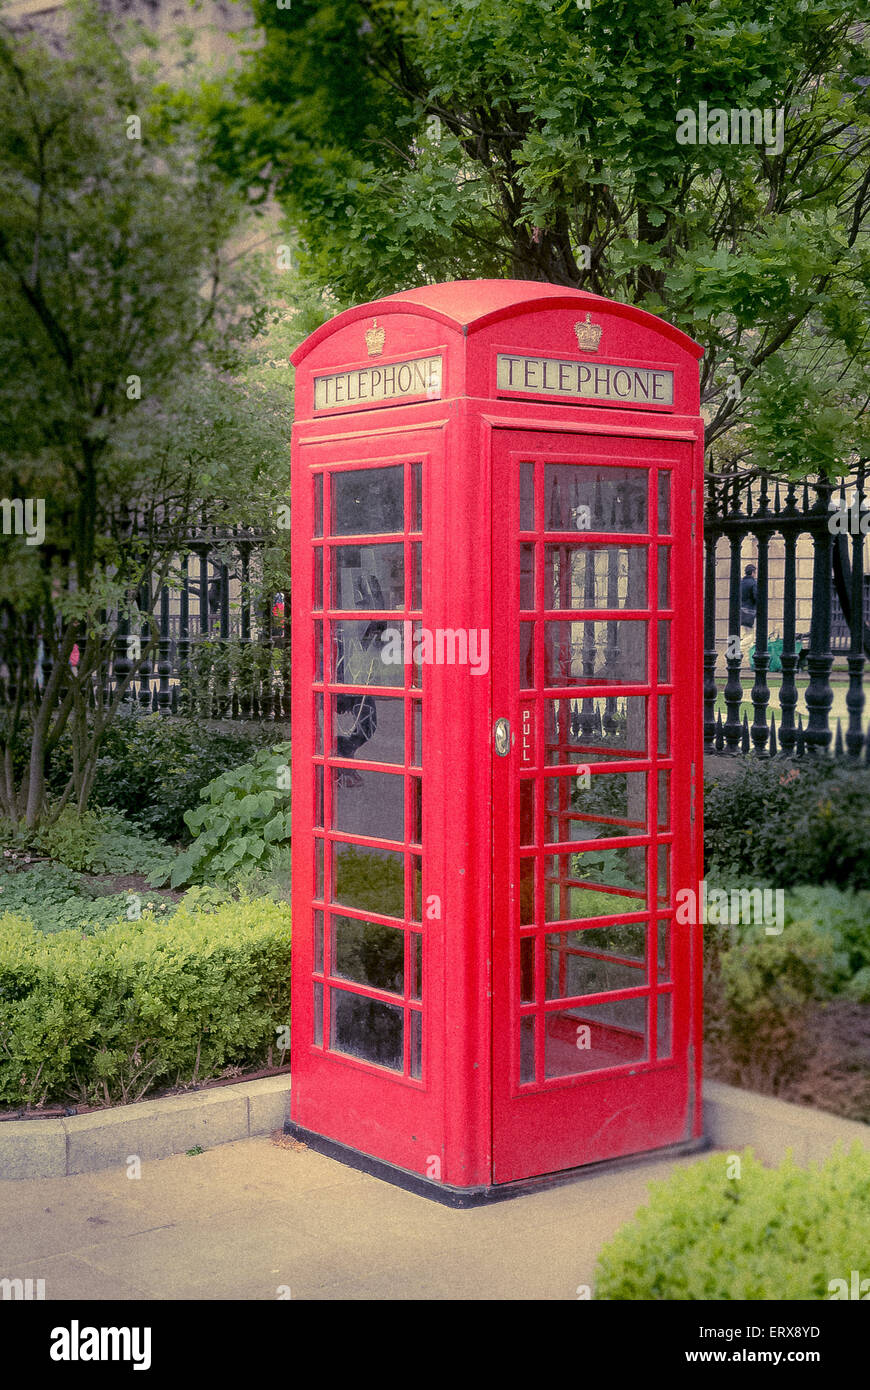 Traditional red telephone box, UK. - Stock Image